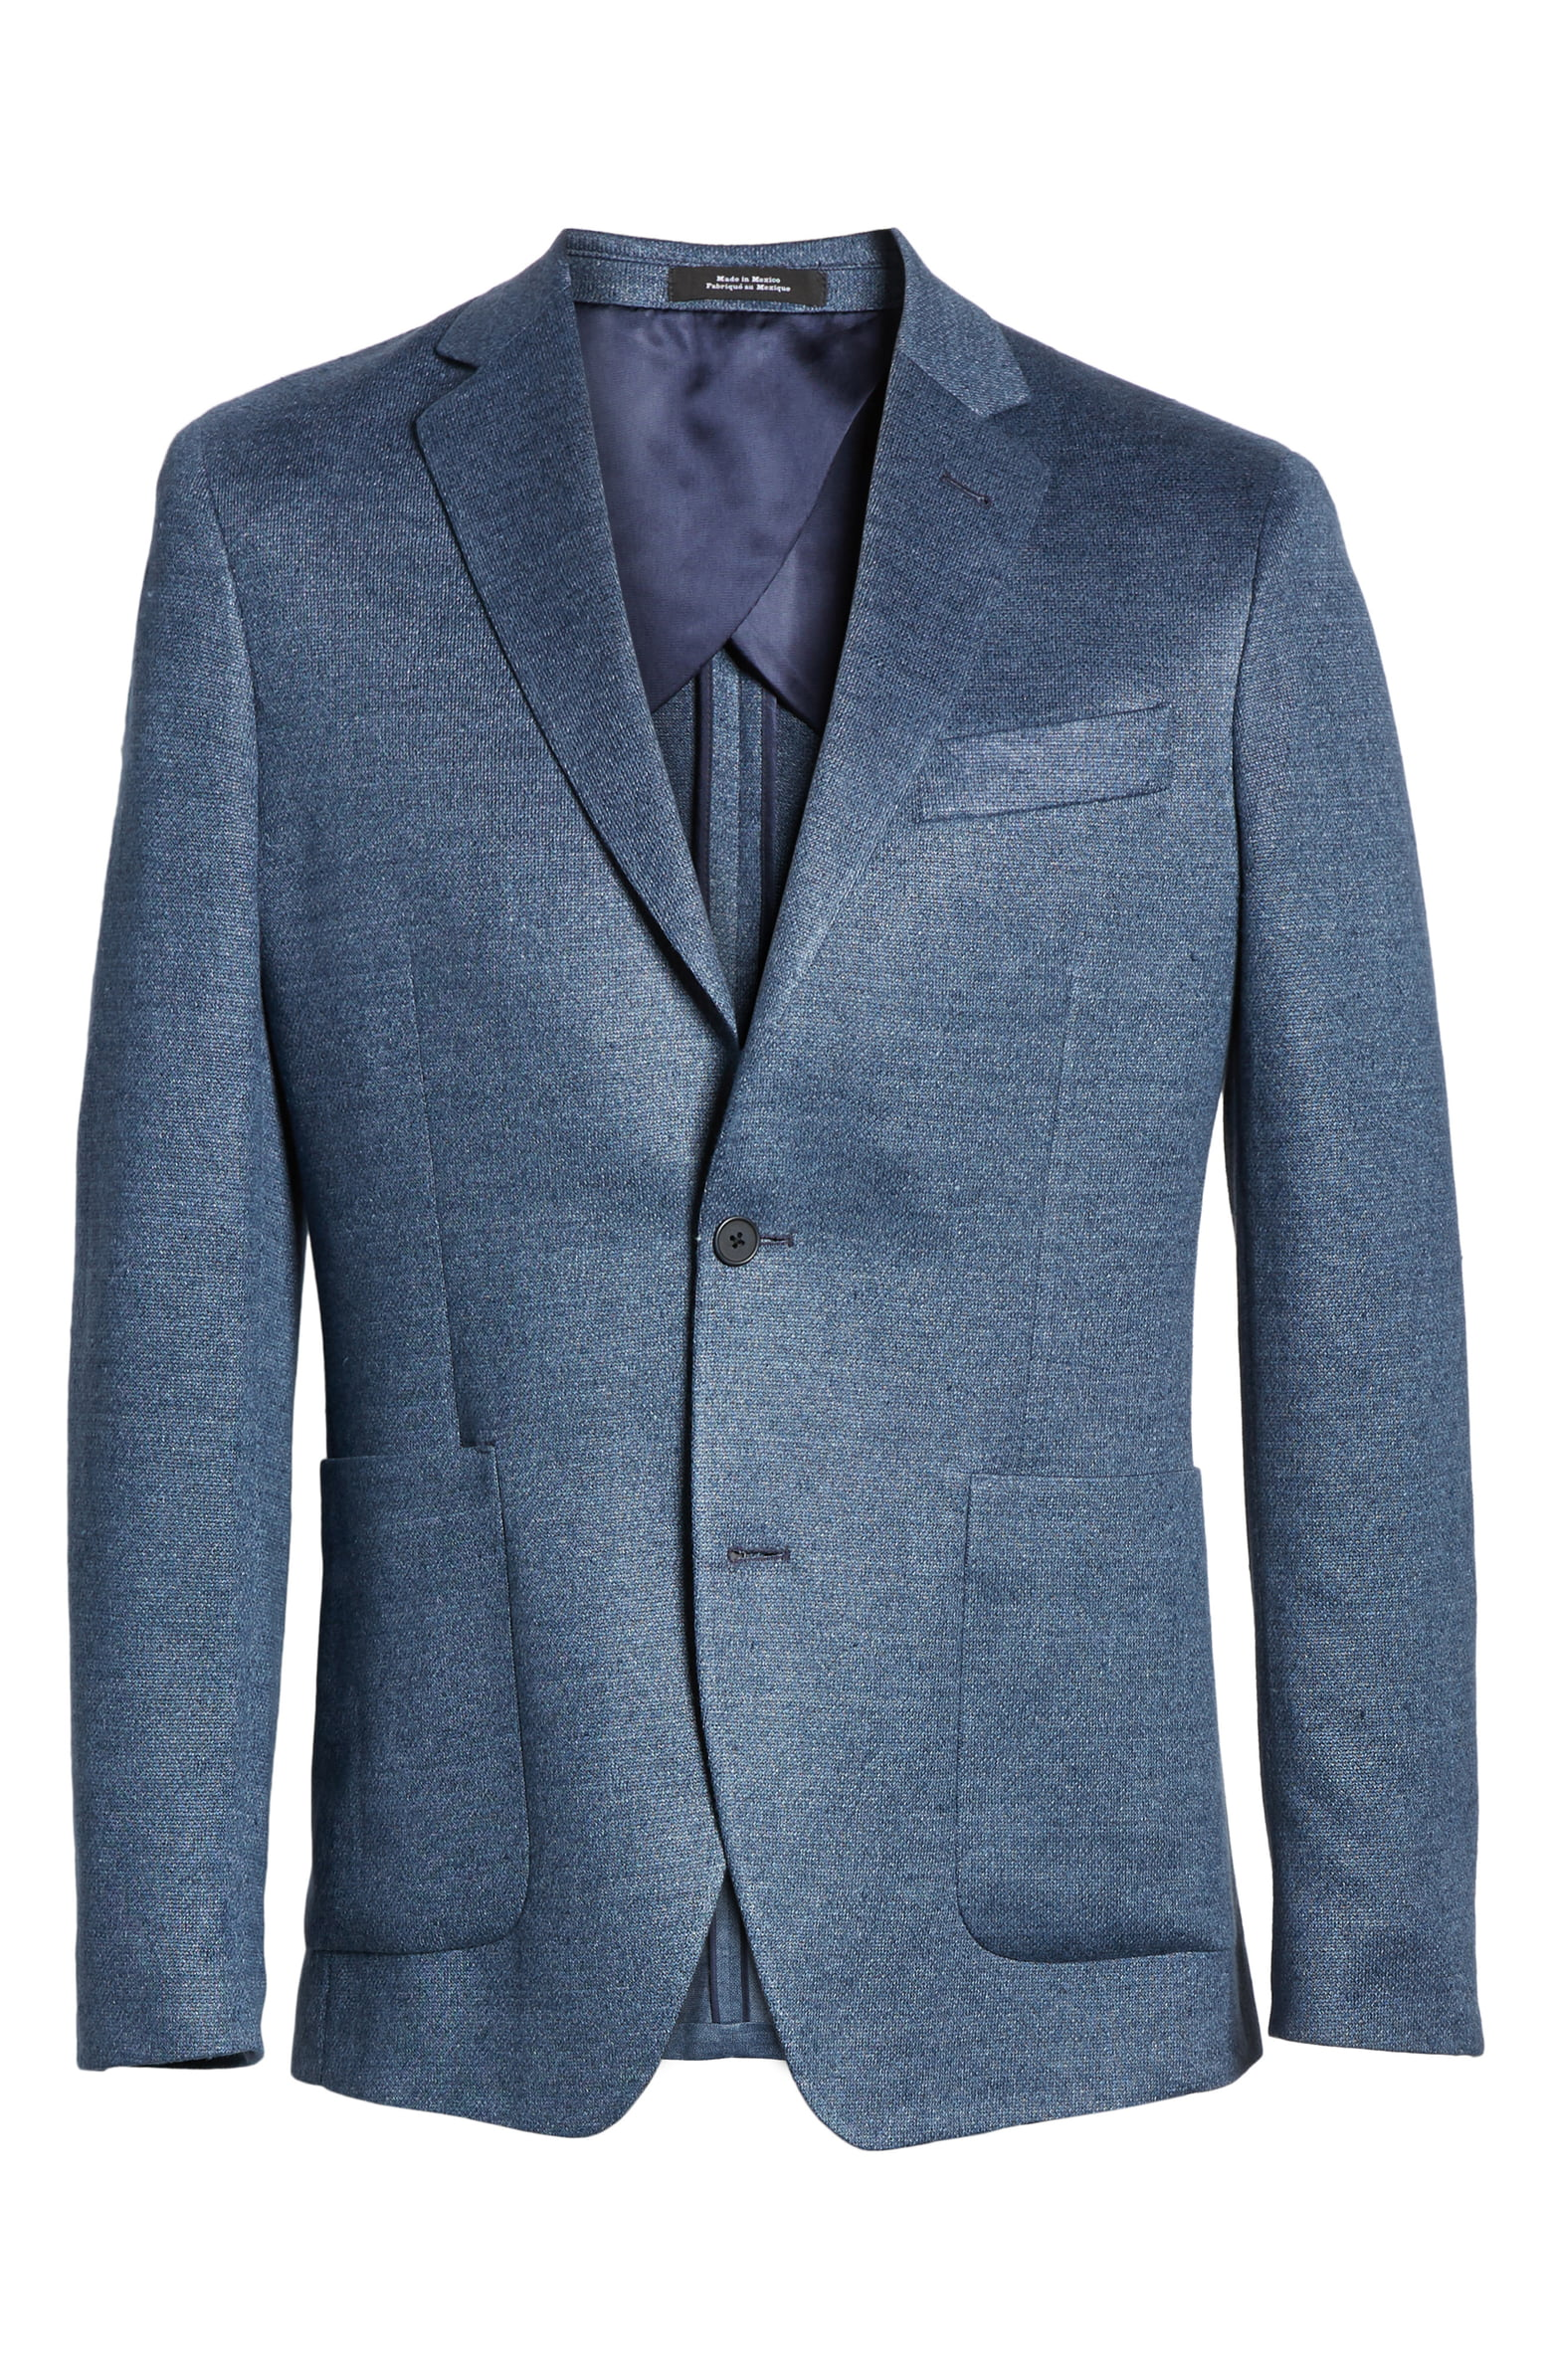 Trim Fit Linen Sport Coat - Nordstrom Men's Shop has an affordable lightweight jacket option for the warm 6 months that will be necessary from May until October.